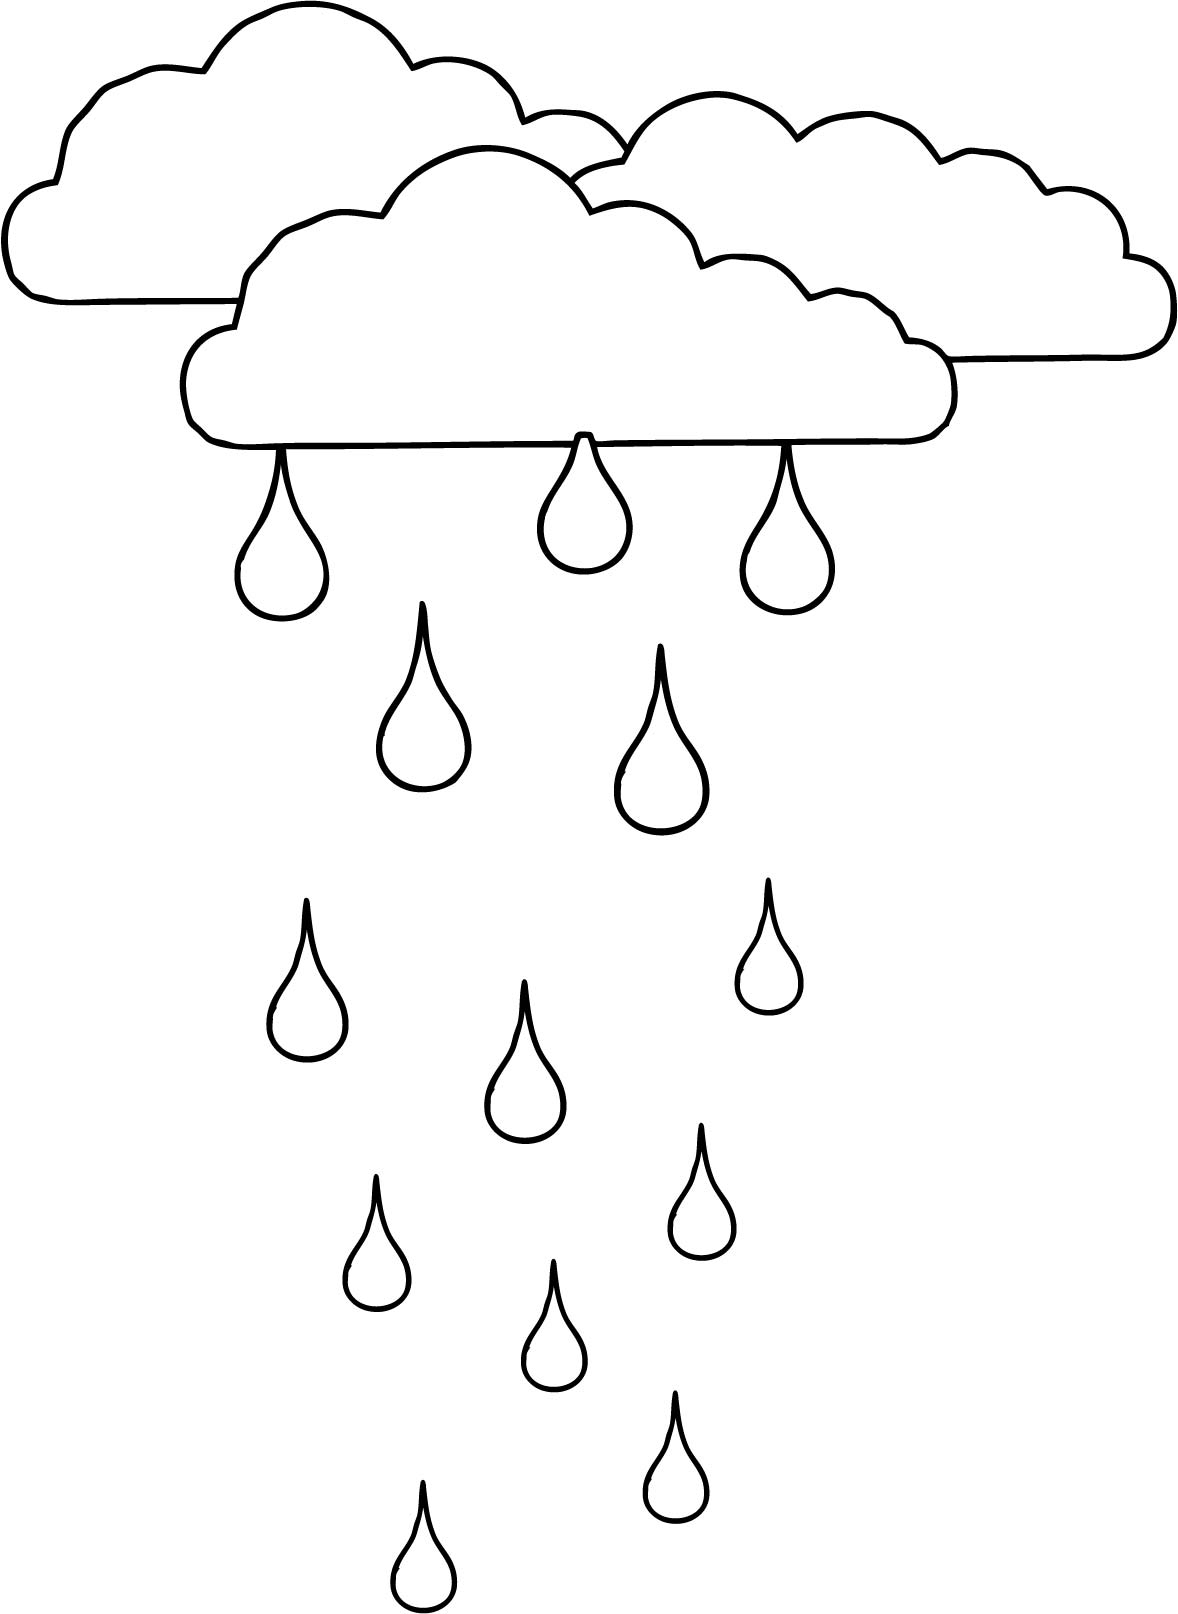 Spring Rain Coloring Pages At Getcolorings